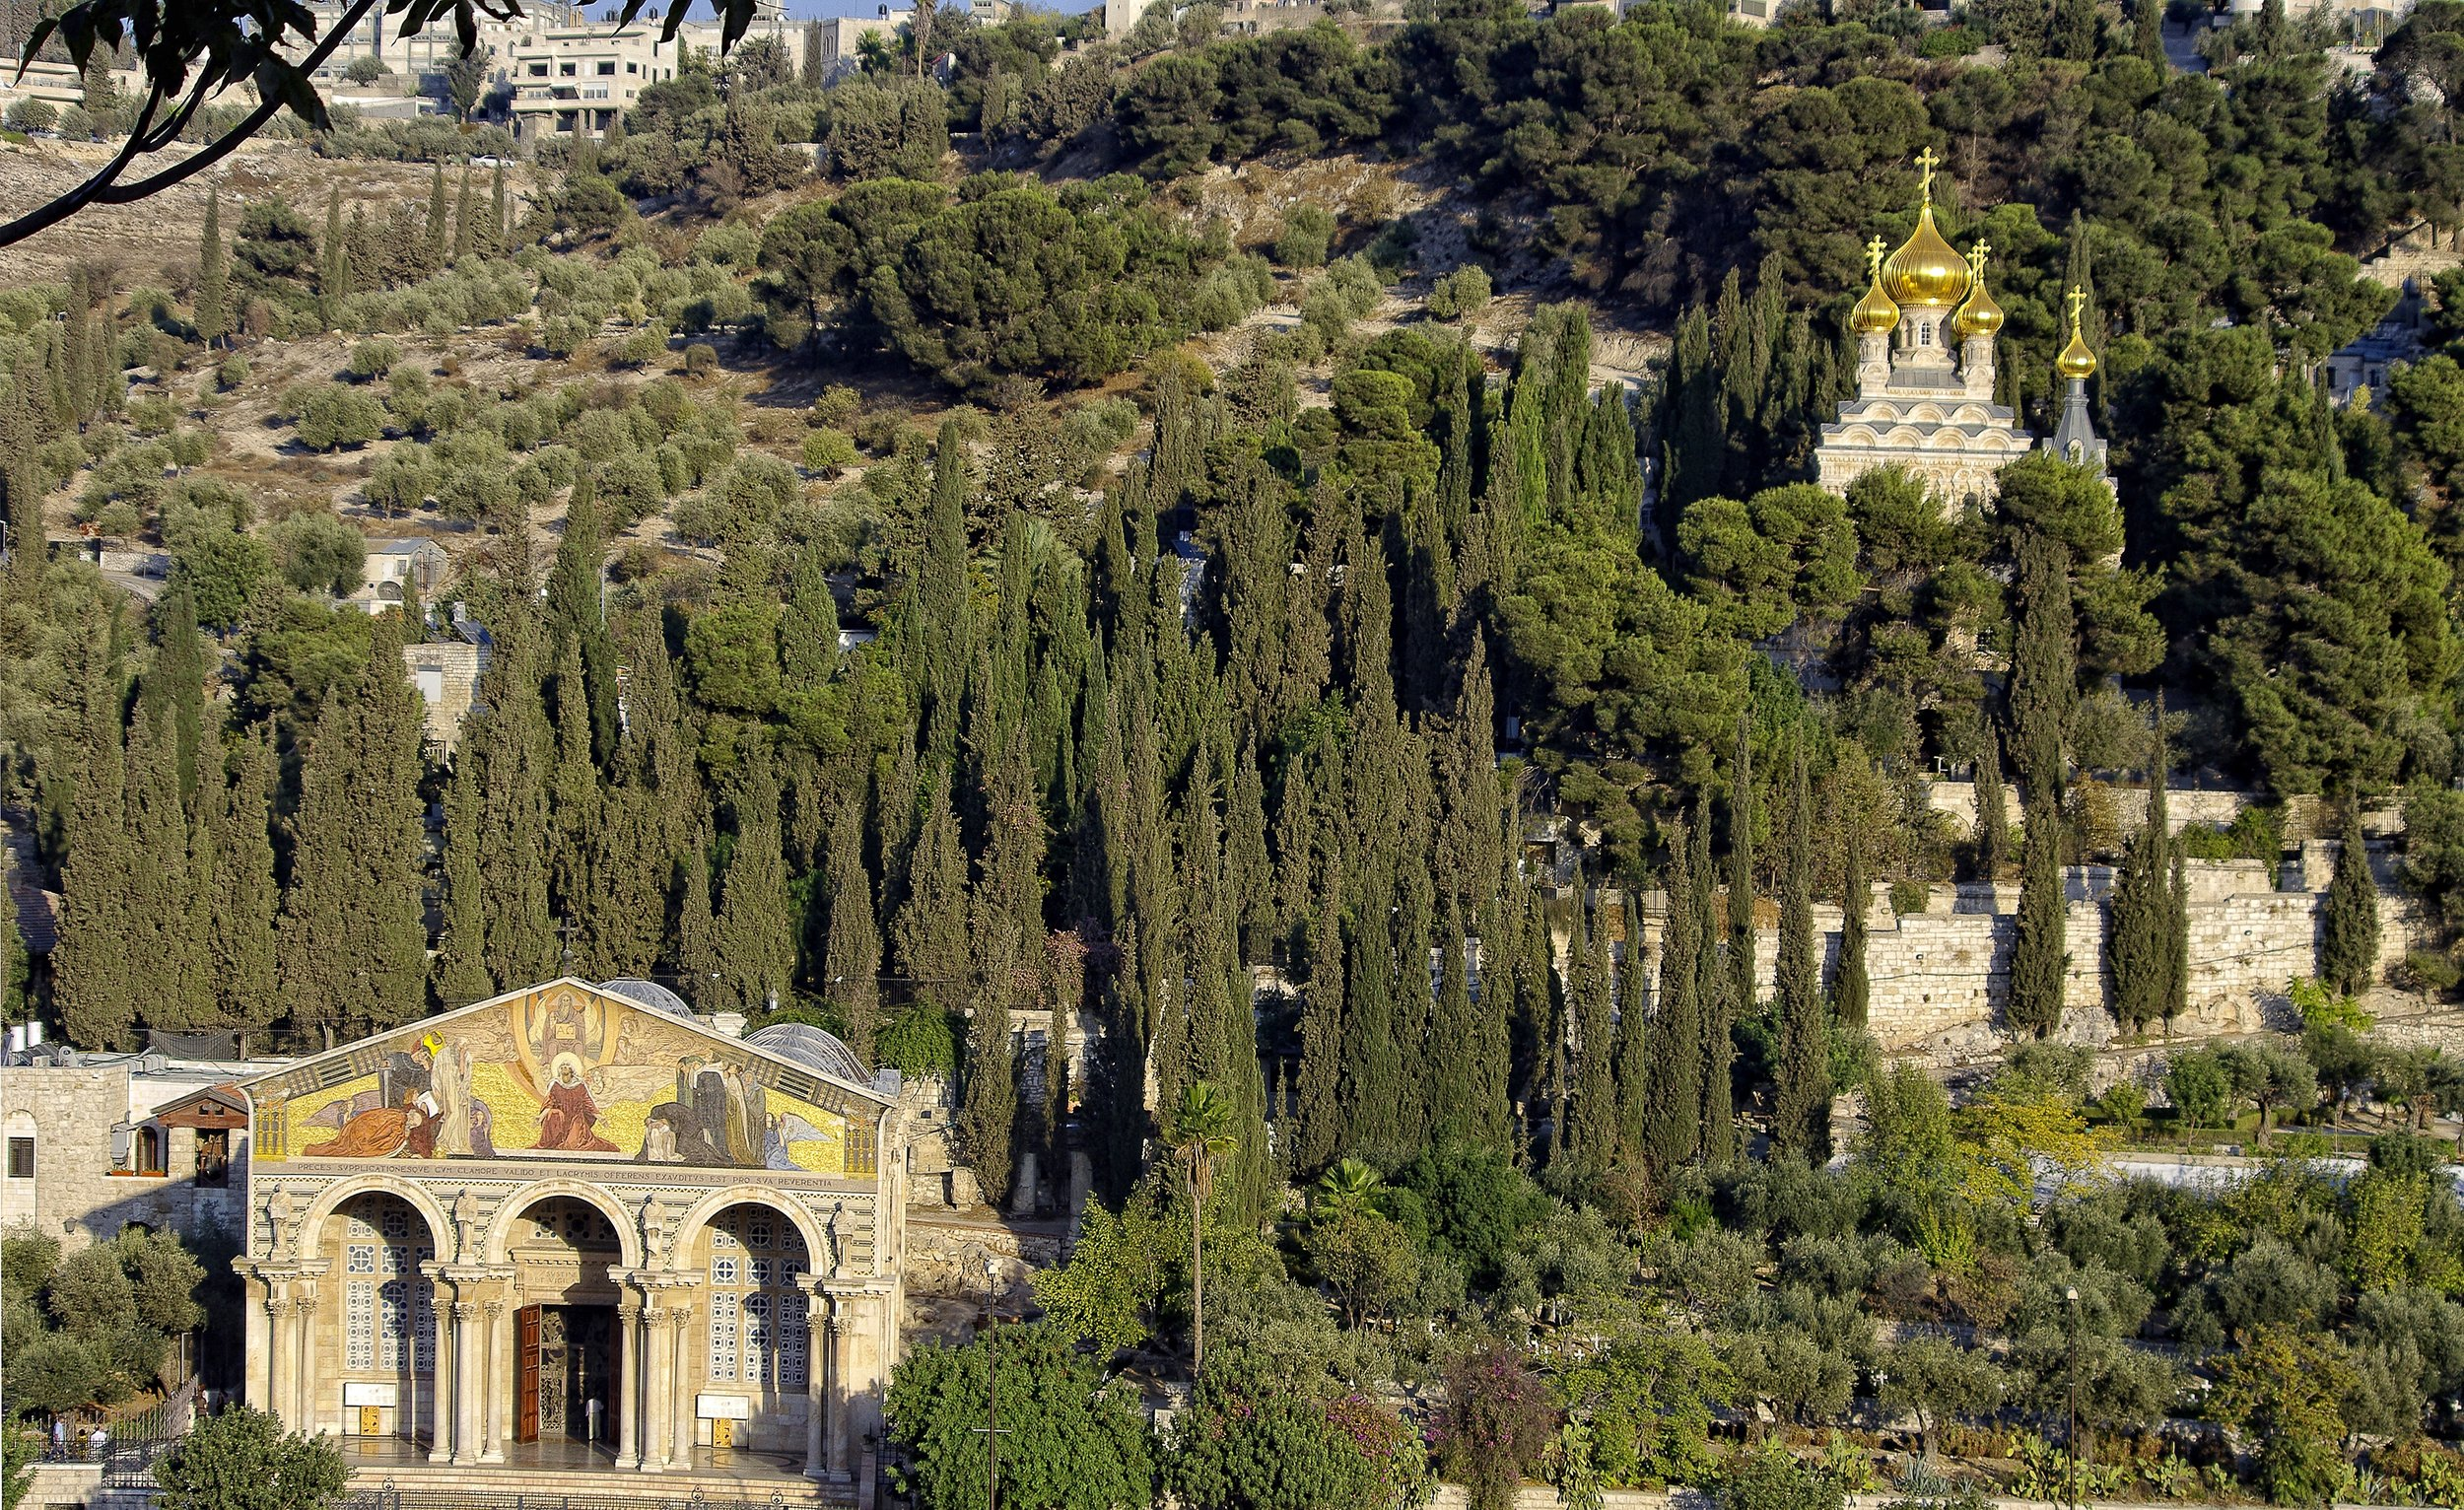 The mount of olives, Jerusalem.